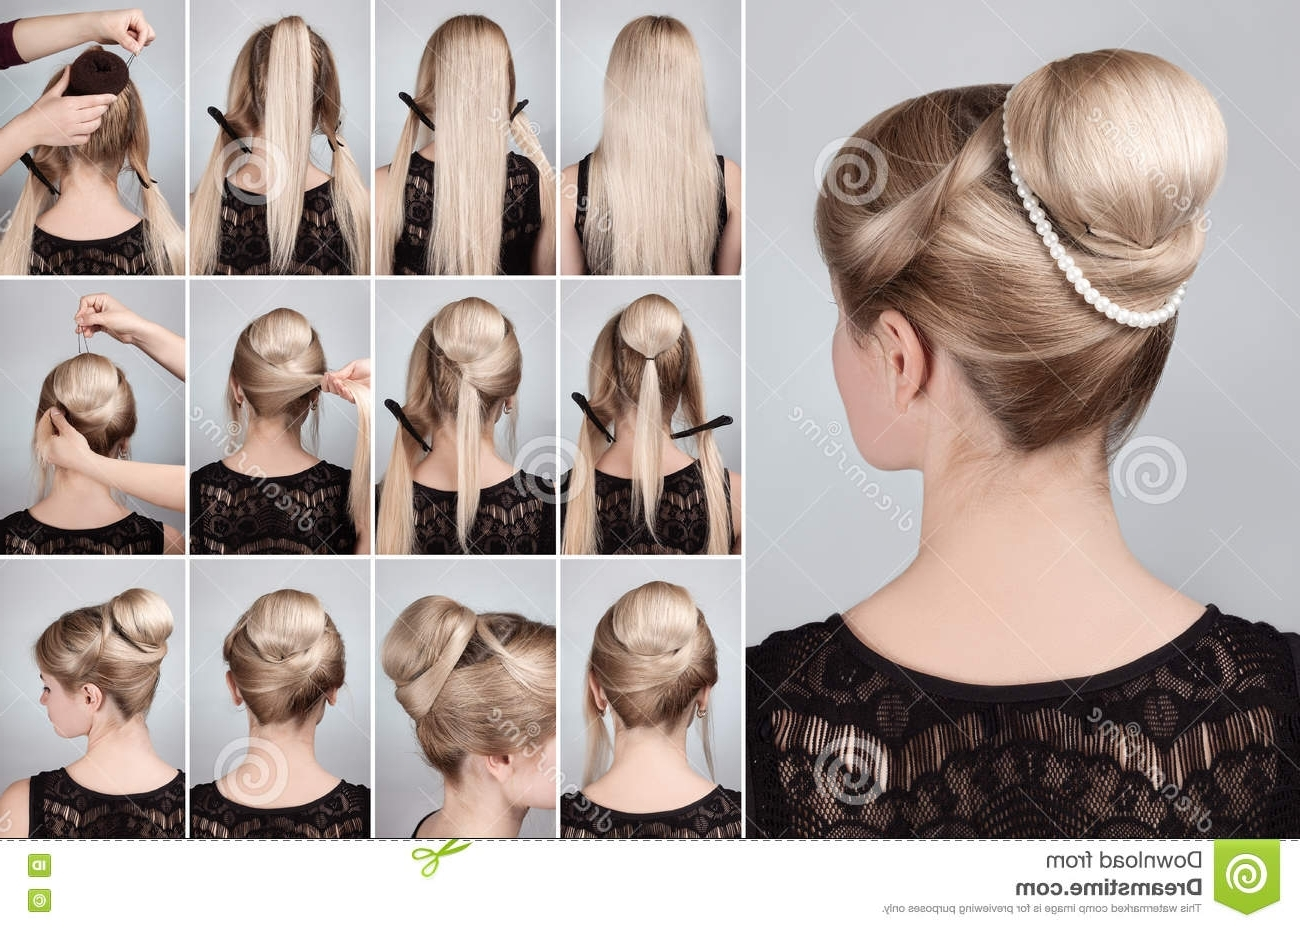 Hairstyle With Bun For Long Hair Tutorial Stock Image – Image Of Regarding Updo Hairstyles For Long Hair Tutorial (View 11 of 15)